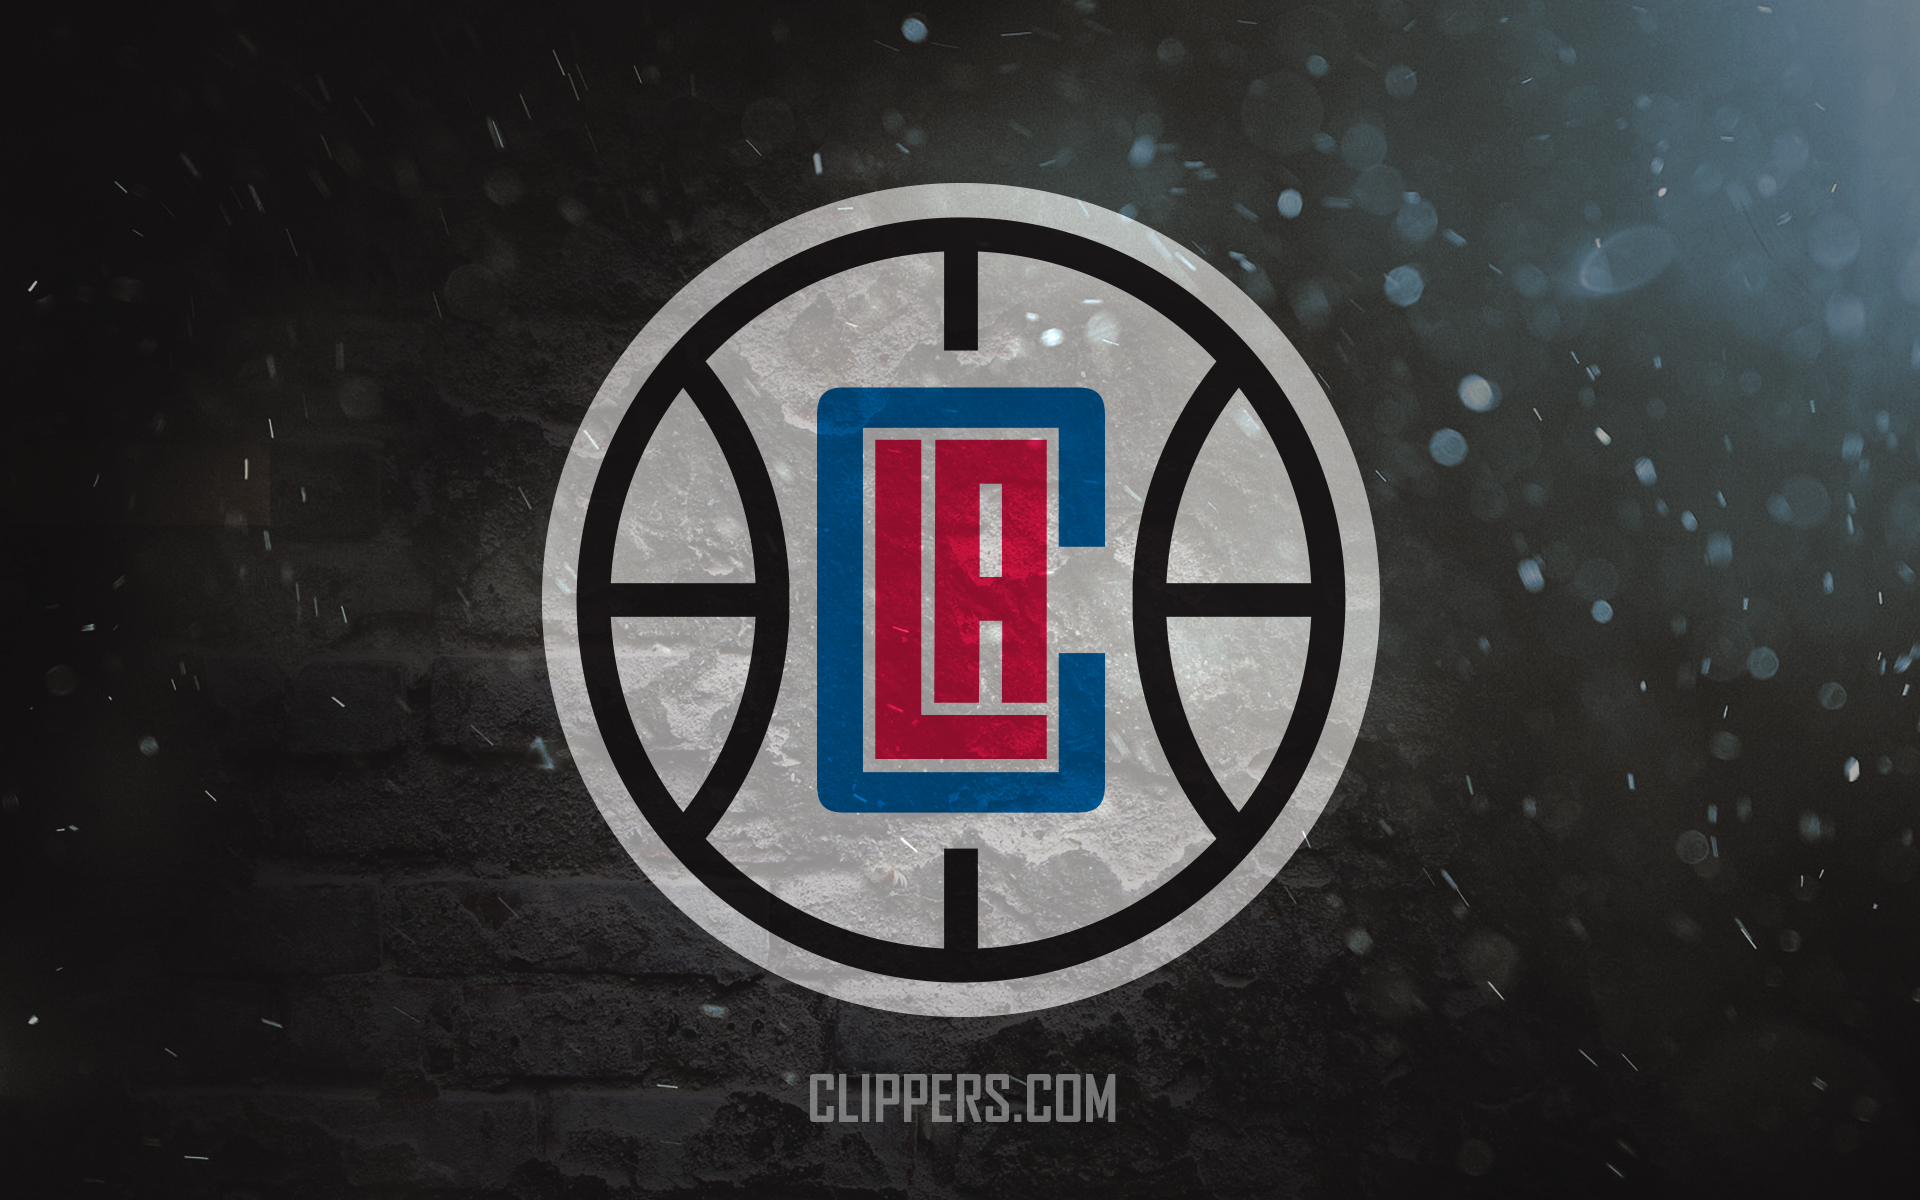 Los Angeles Clippers Wallpaper - La Clippers , HD Wallpaper & Backgrounds